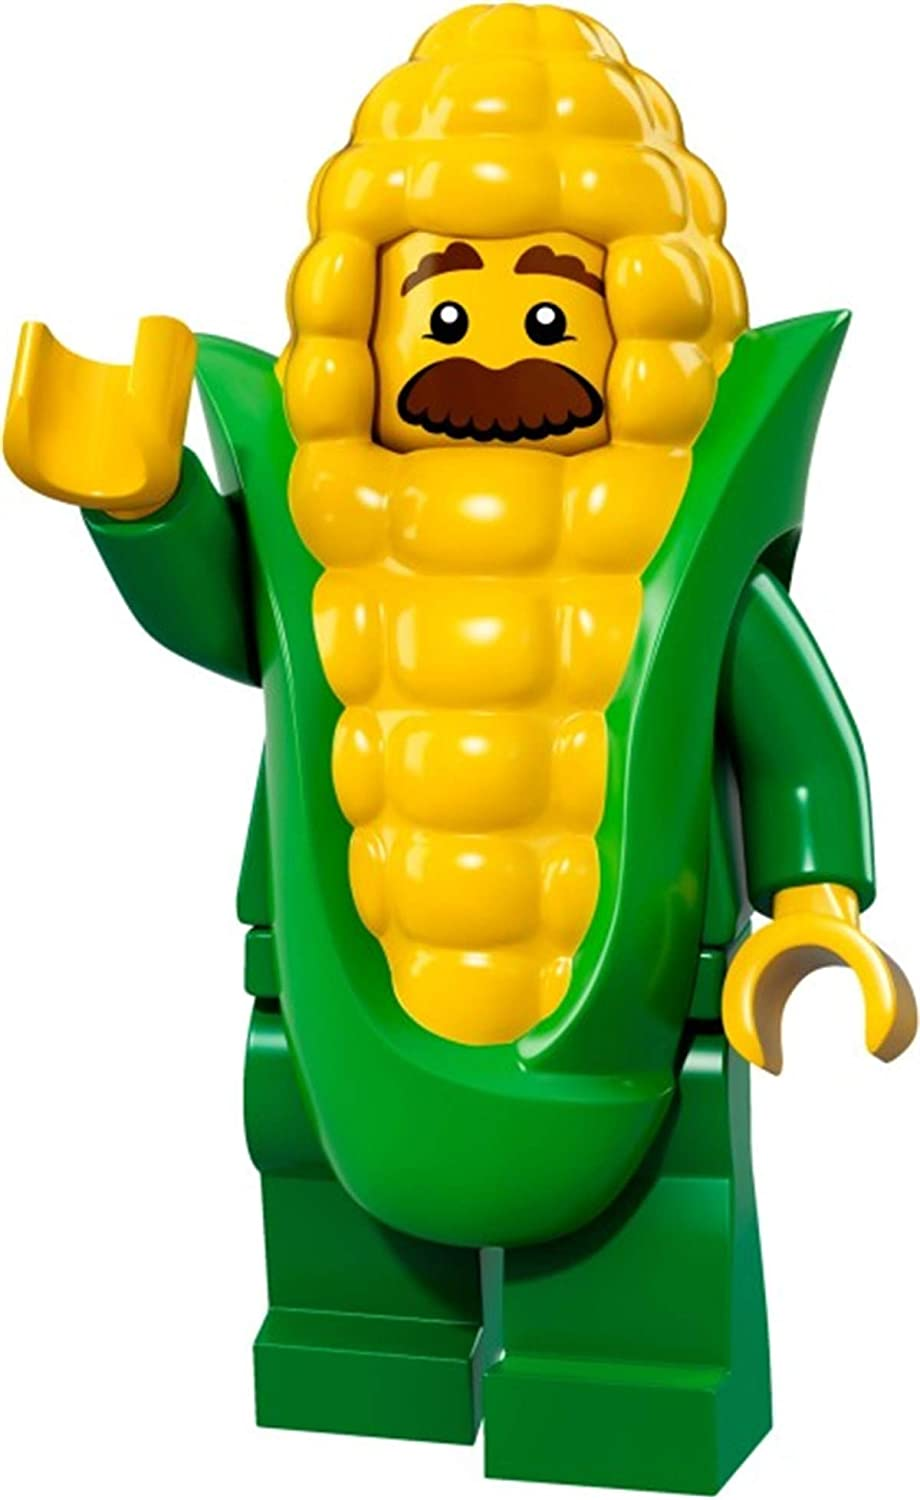 genuine lego minifigures the corn on the cob guy from  series 17